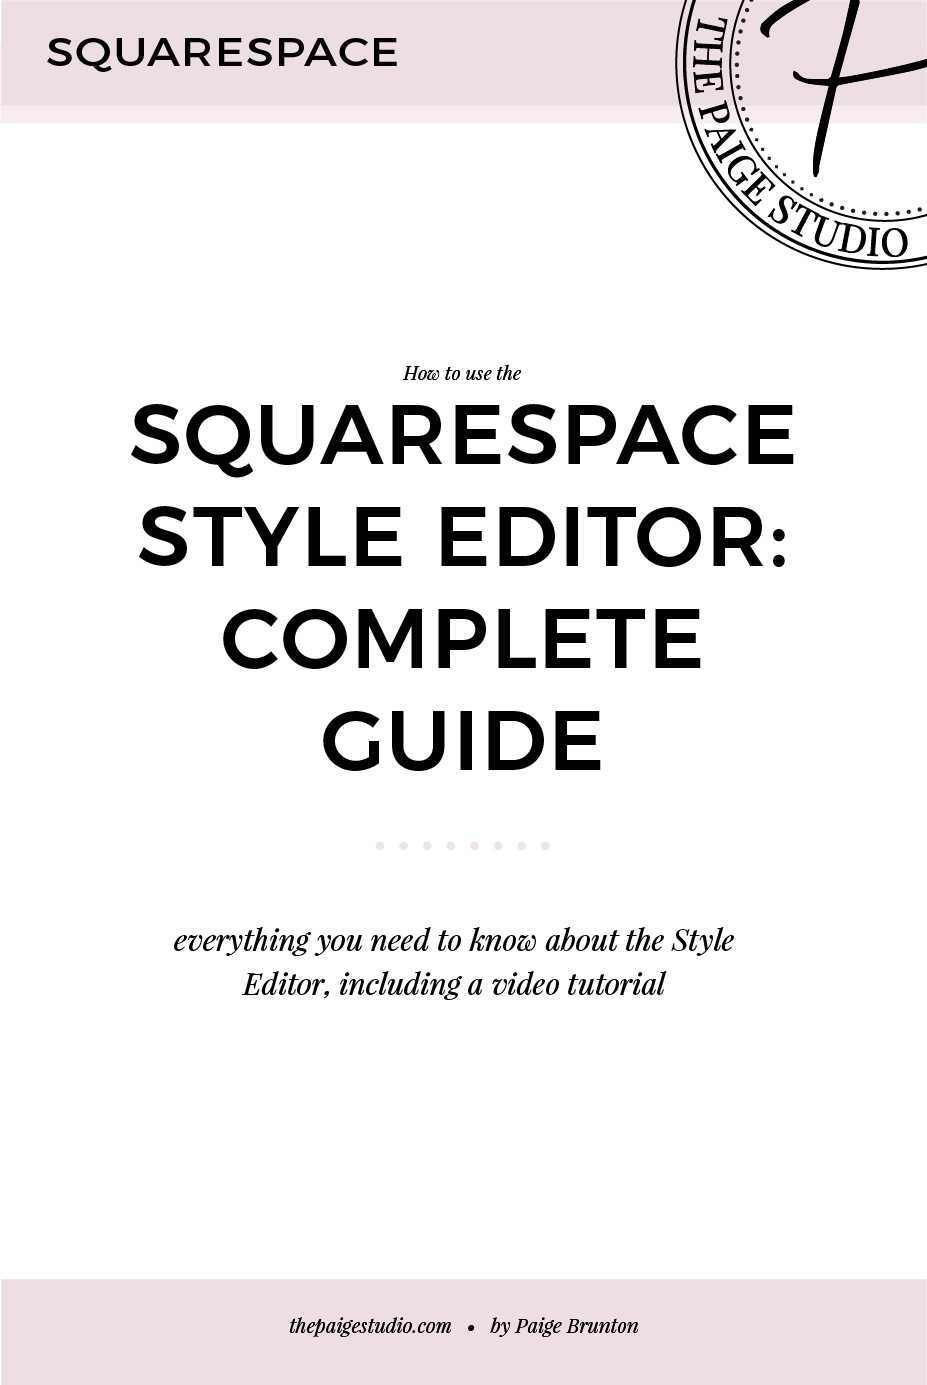 A complete guide to using the Squarespace Style Editor.png